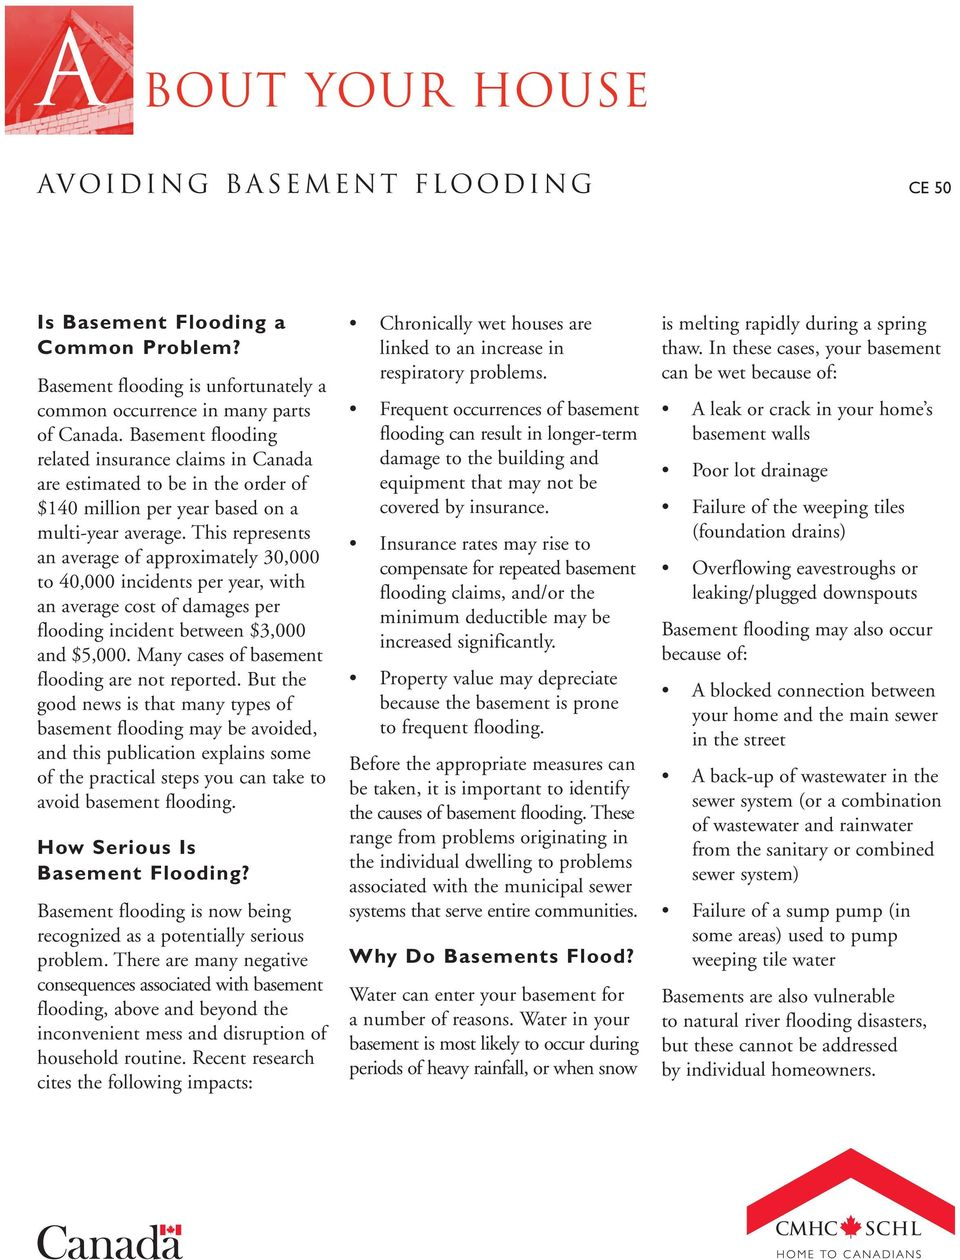 This represents an average of approximately 30,000 to 40,000 incidents per year, with an average cost of damages per flooding incident between $3,000 and $5,000.